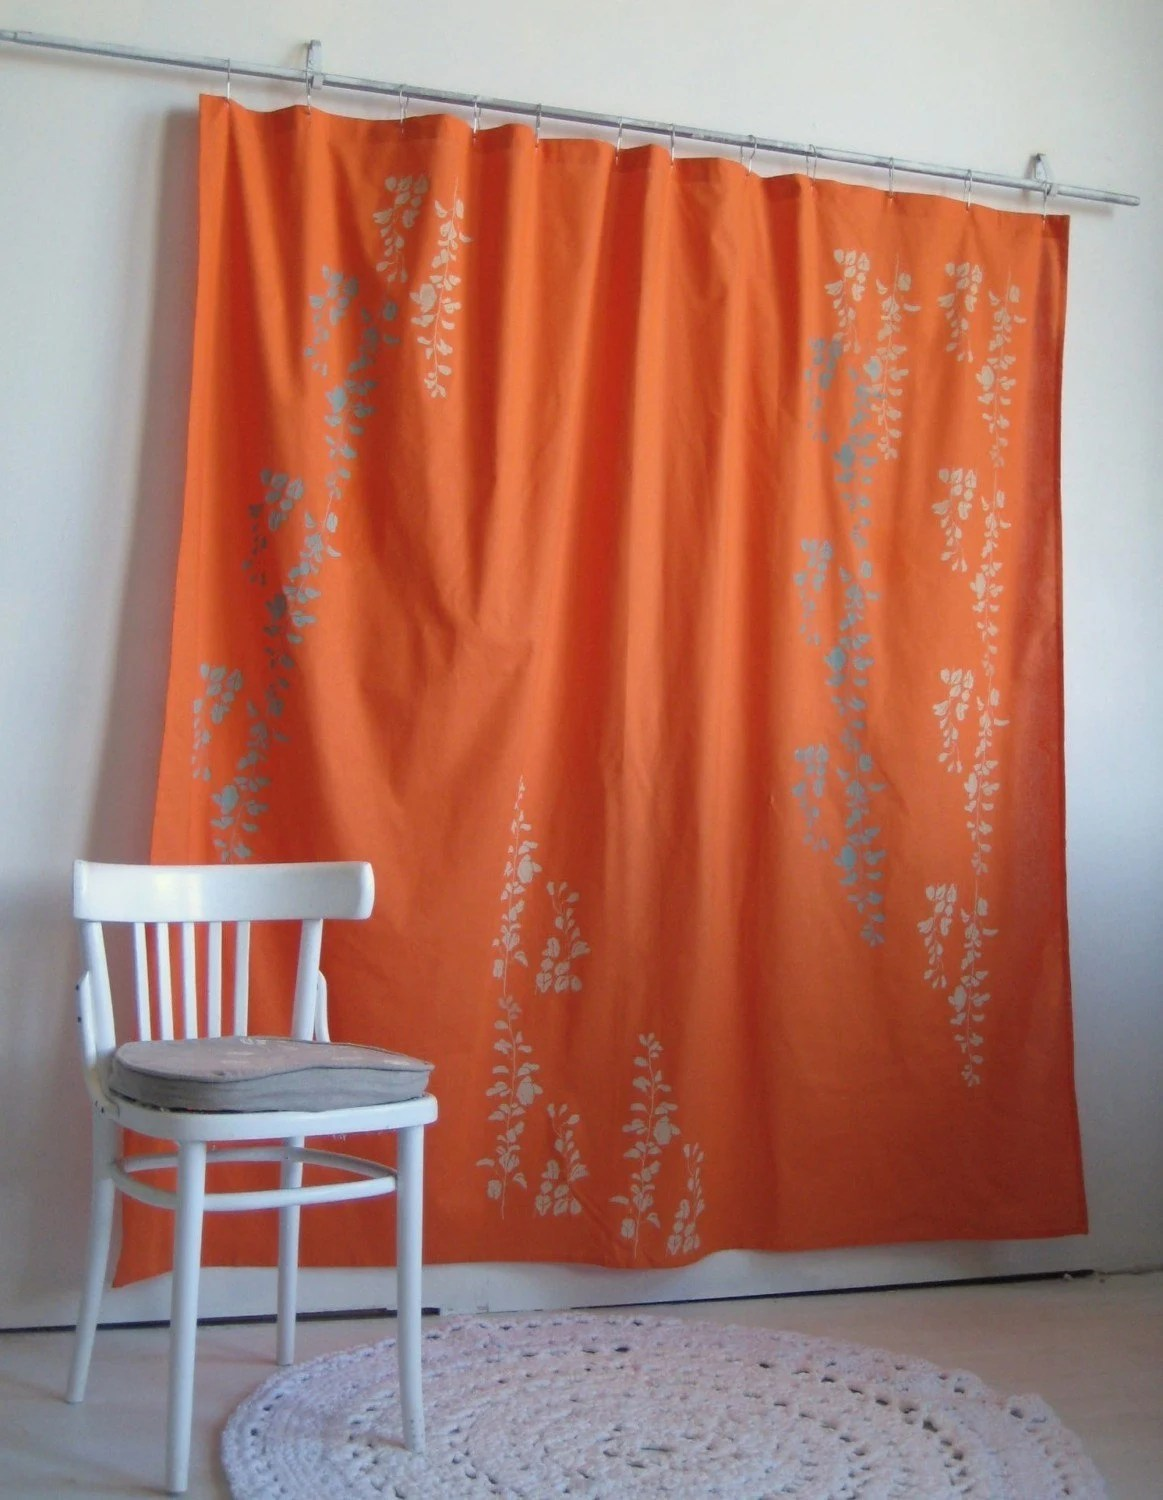 Bright Orange Shower Curtain With Wisteria Print By Appetitehome